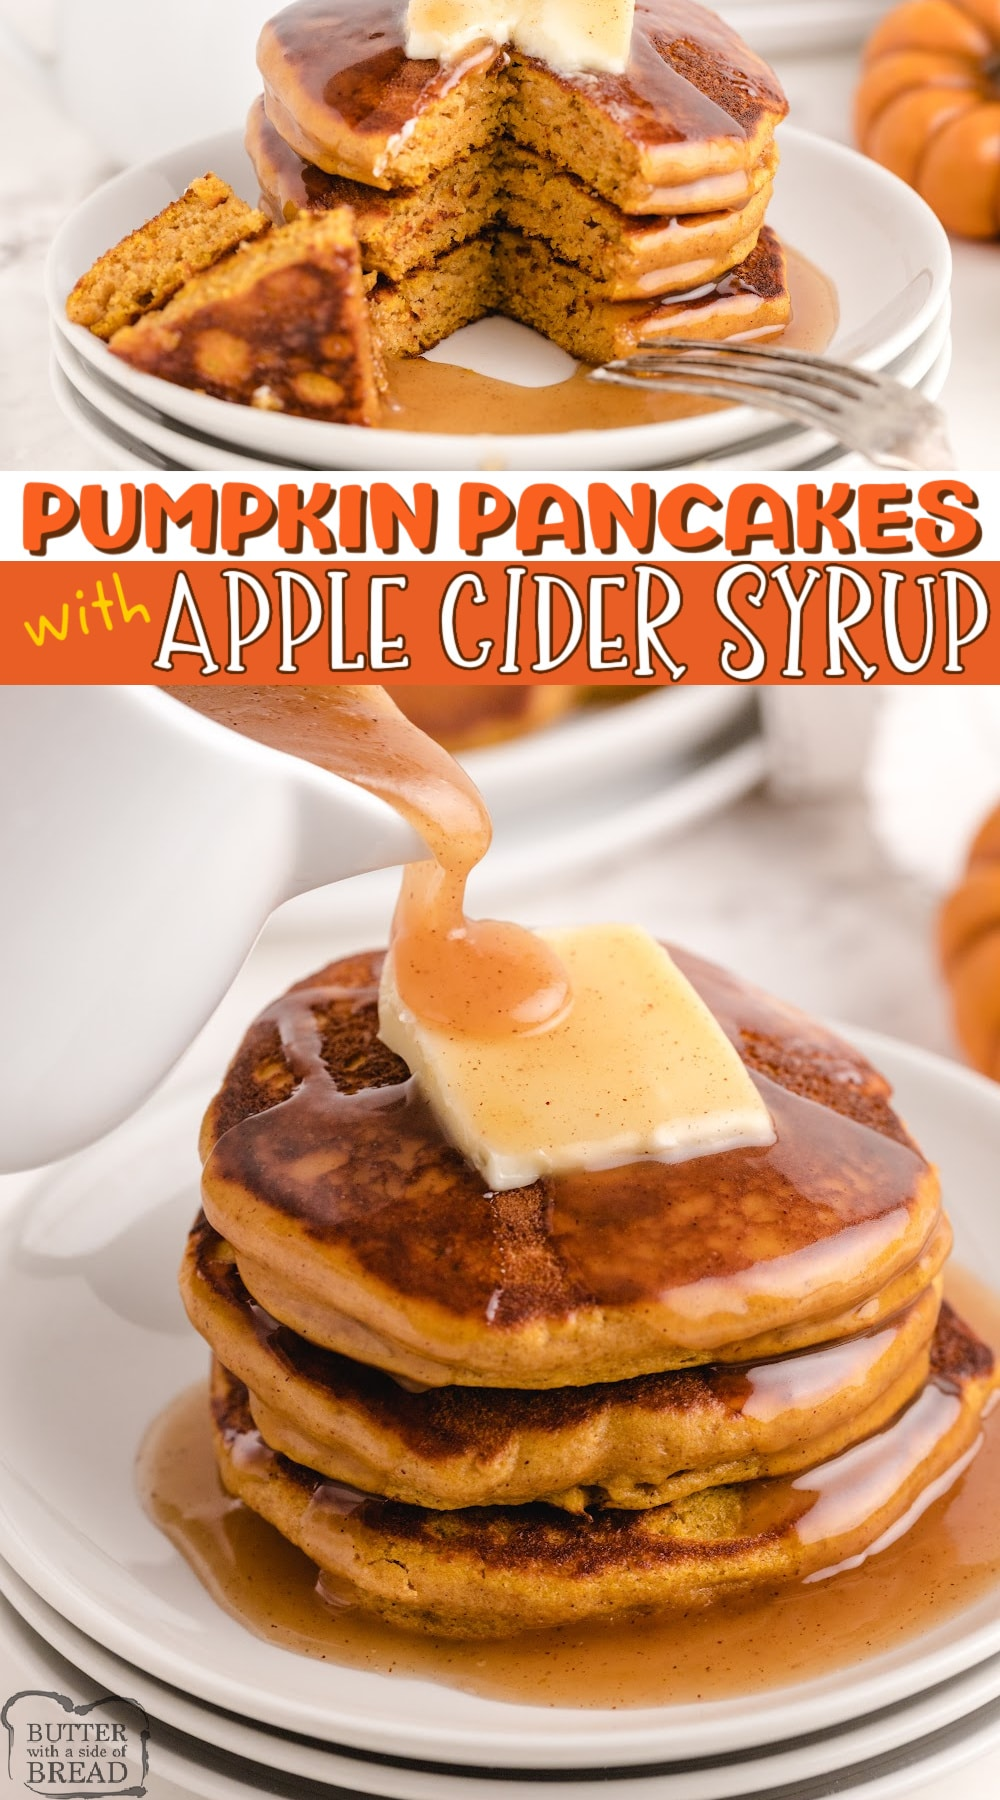 Pumpkin Pancakes with Apple Cider Syrup begin with a pancake mix for an easy fall breakfast. The pancakes are full of pumpkin flavor and the homemade syrup is absolutely incredible!